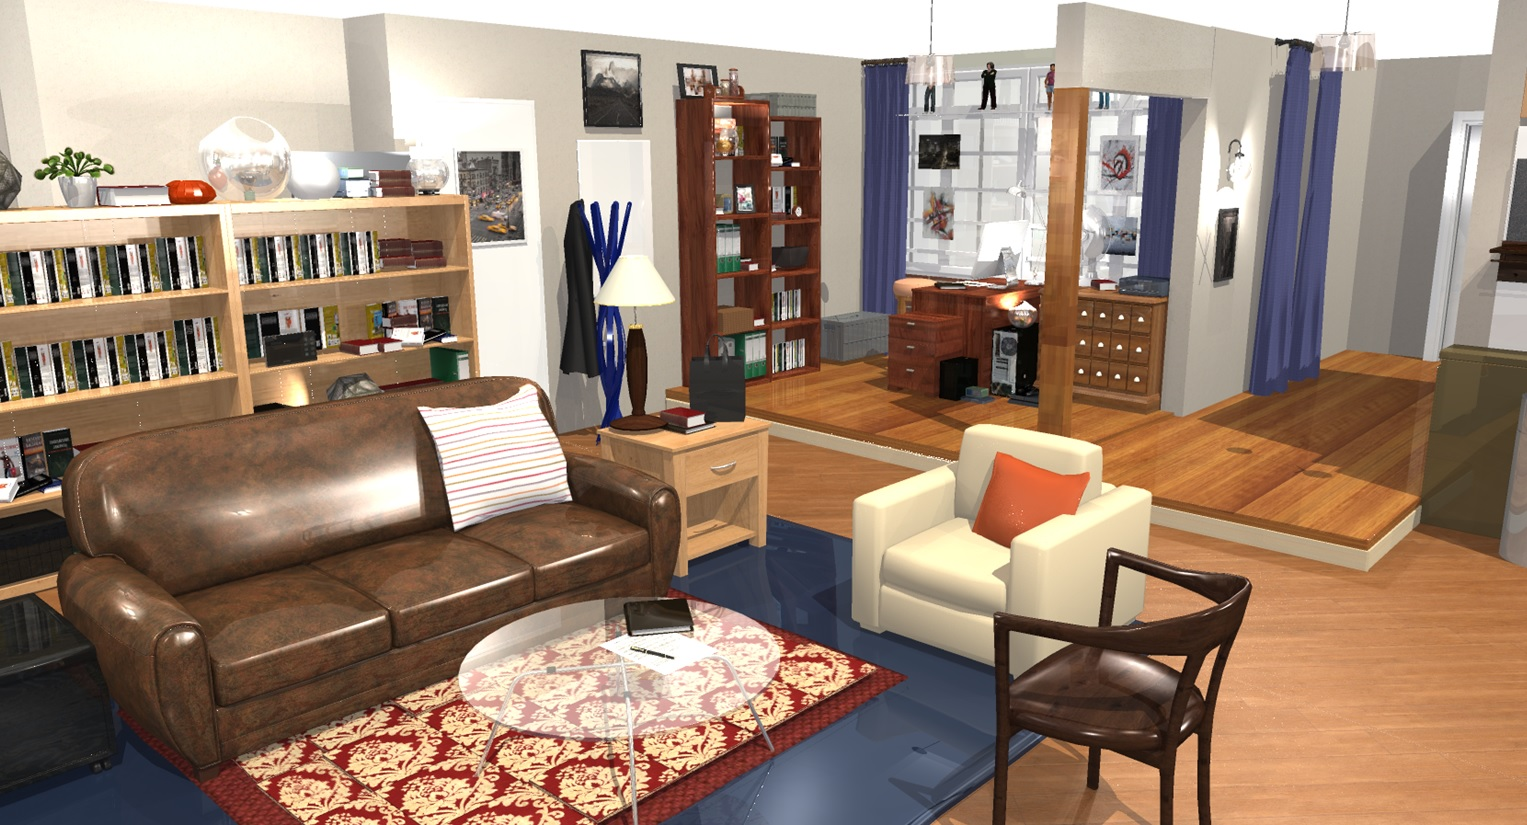 The big bang theory wohnung in 3d homebyme for Living room setups for apartments